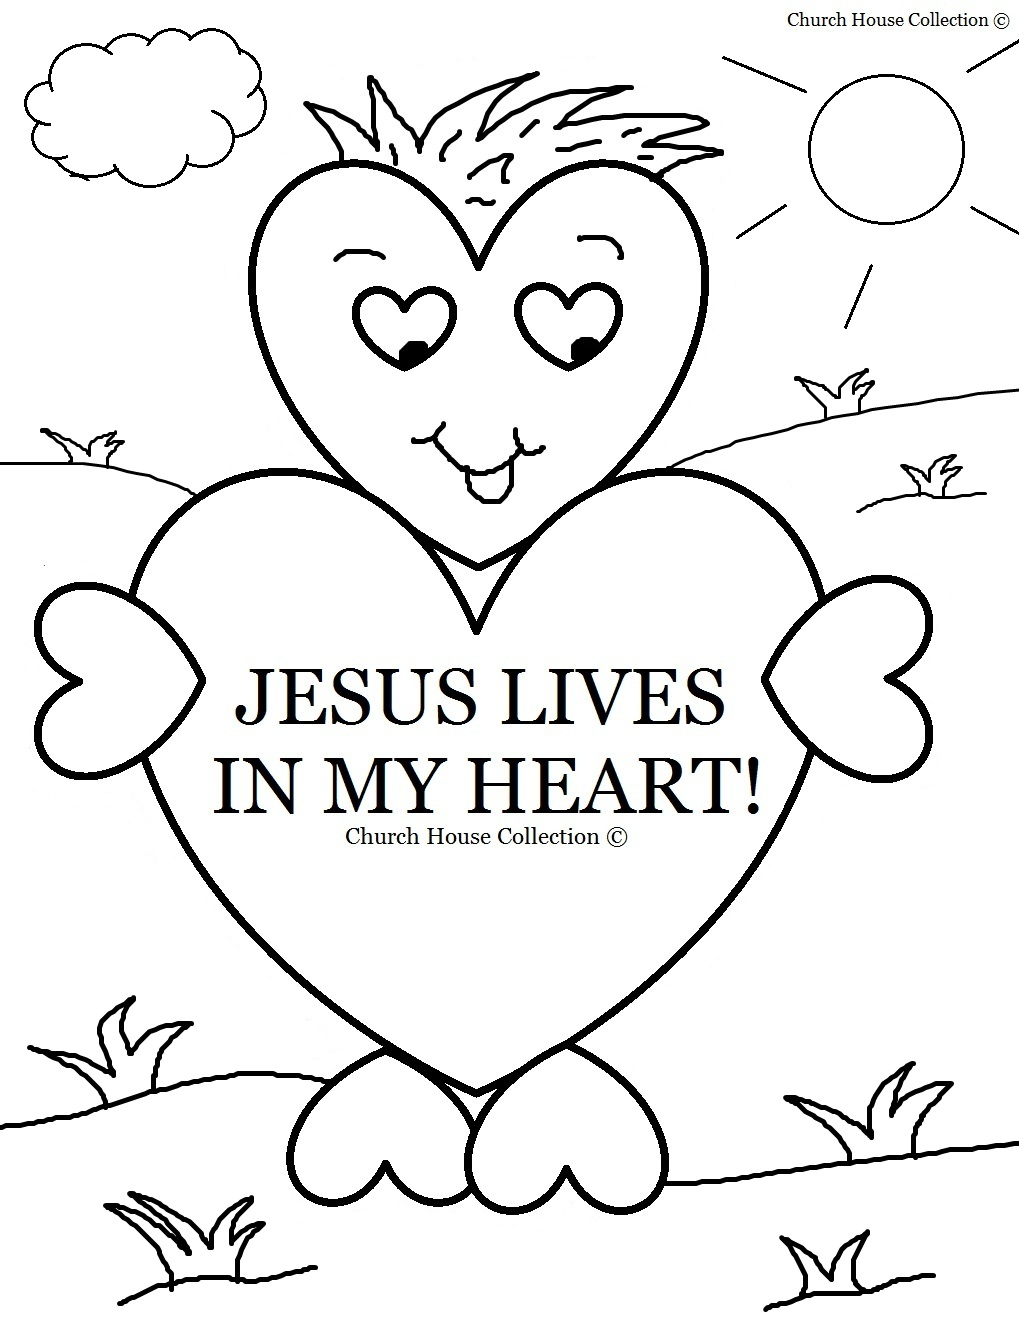 Church House Collection Blog: Jesus Lives In My Heart ...